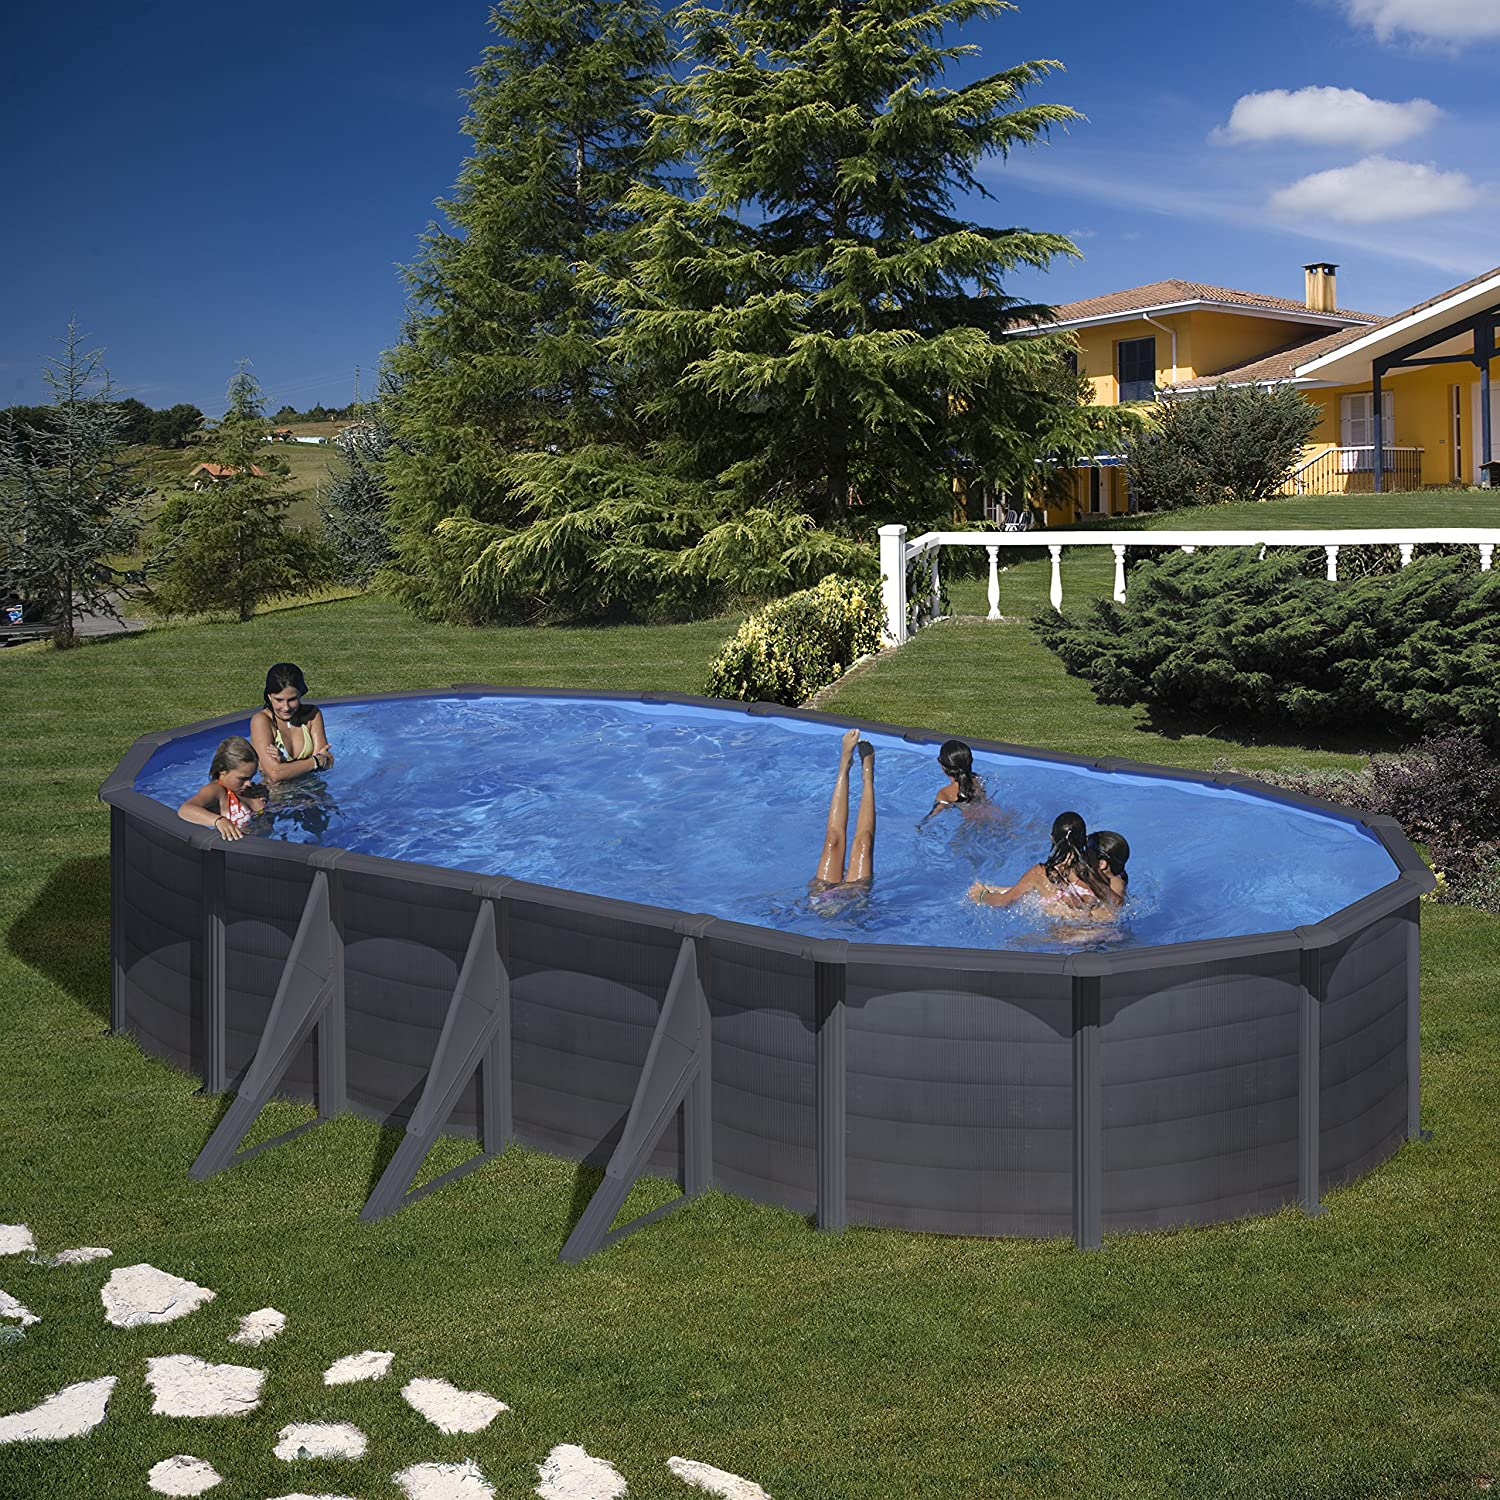 Piscina Ovalada Grafito Kea 730x375x120 Cm Gre Kit730gf: Amazon.es ...